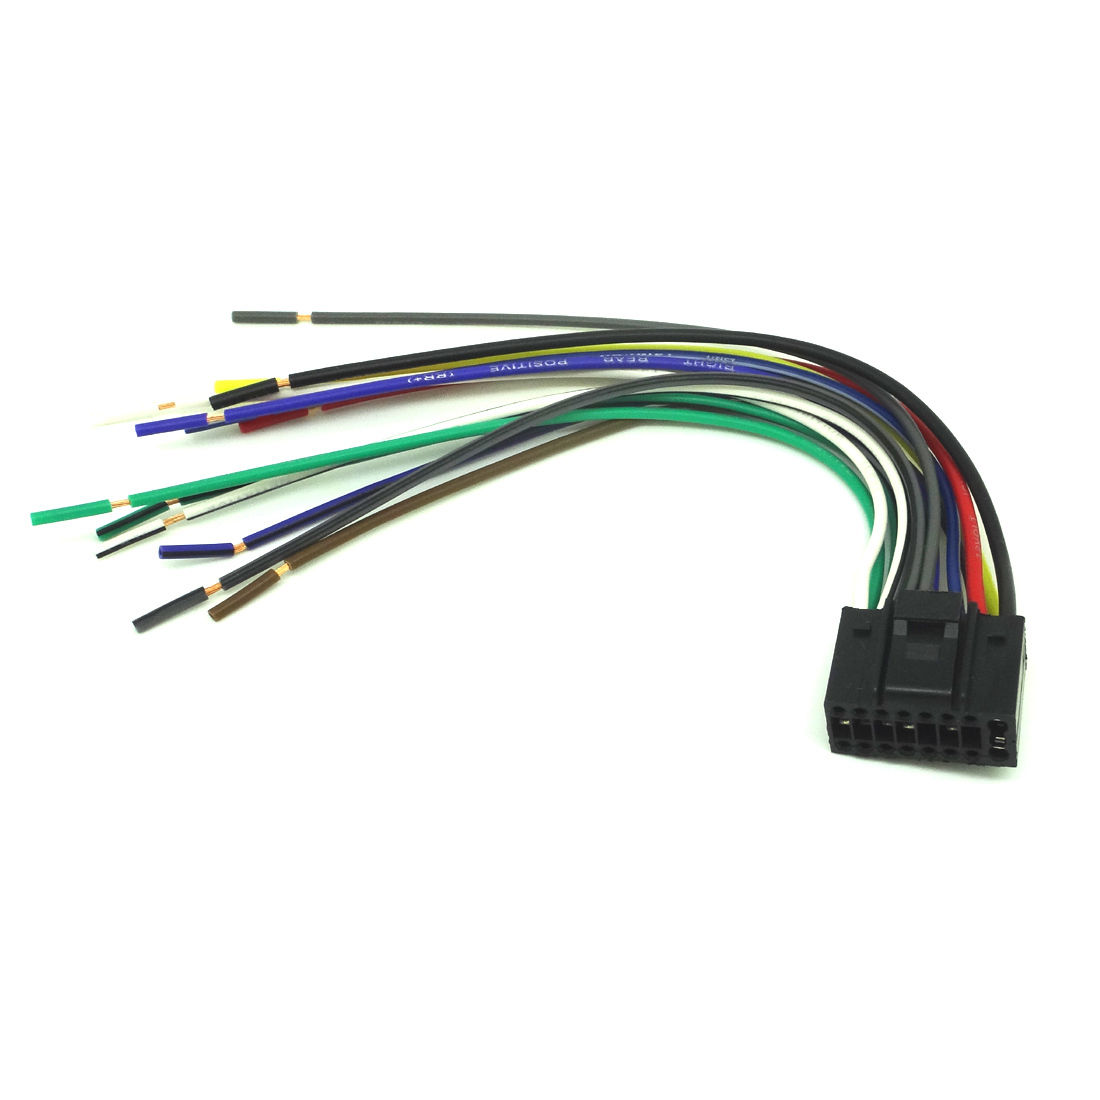 small resolution of kenwood kdc 128 wiring harness kenwood pin wiring harness diagramkenwood pin wiring harness diagram kenwood diy